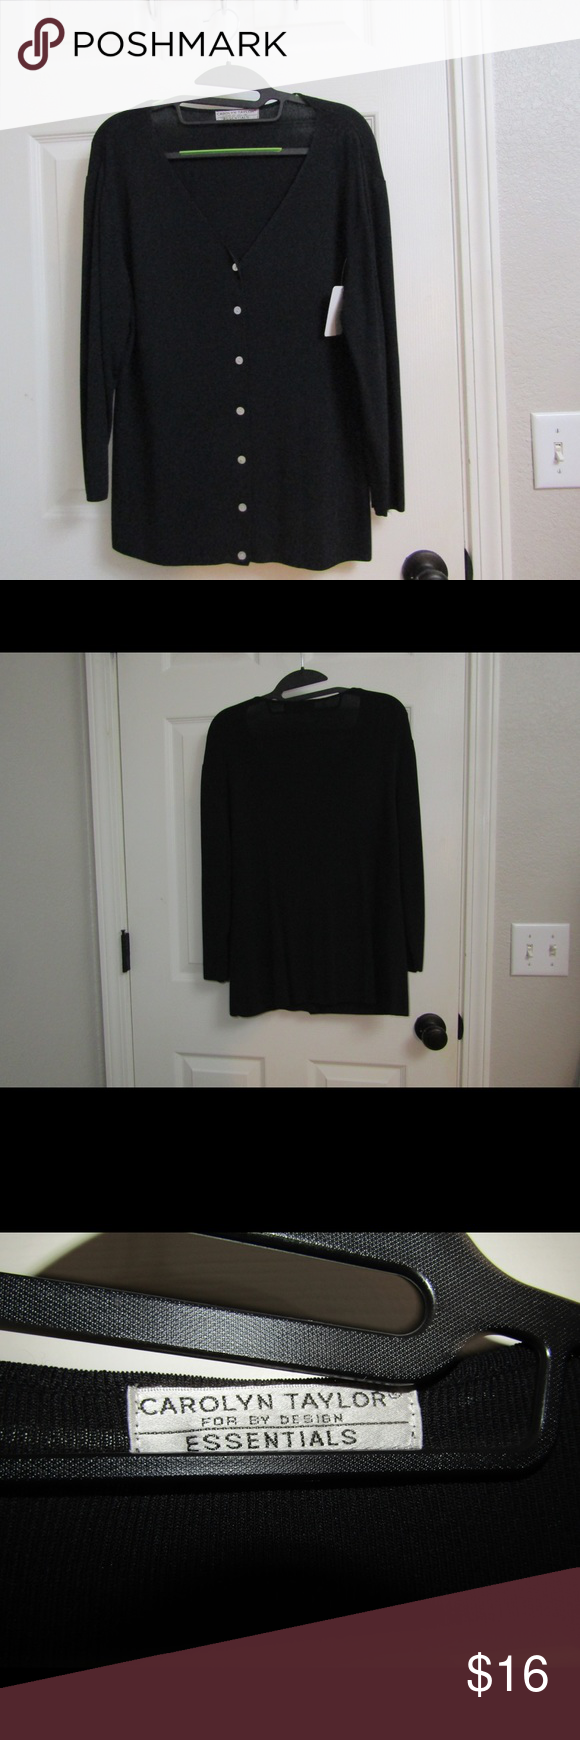 Carolyn Taylor cardigan | Customer support and Delivery